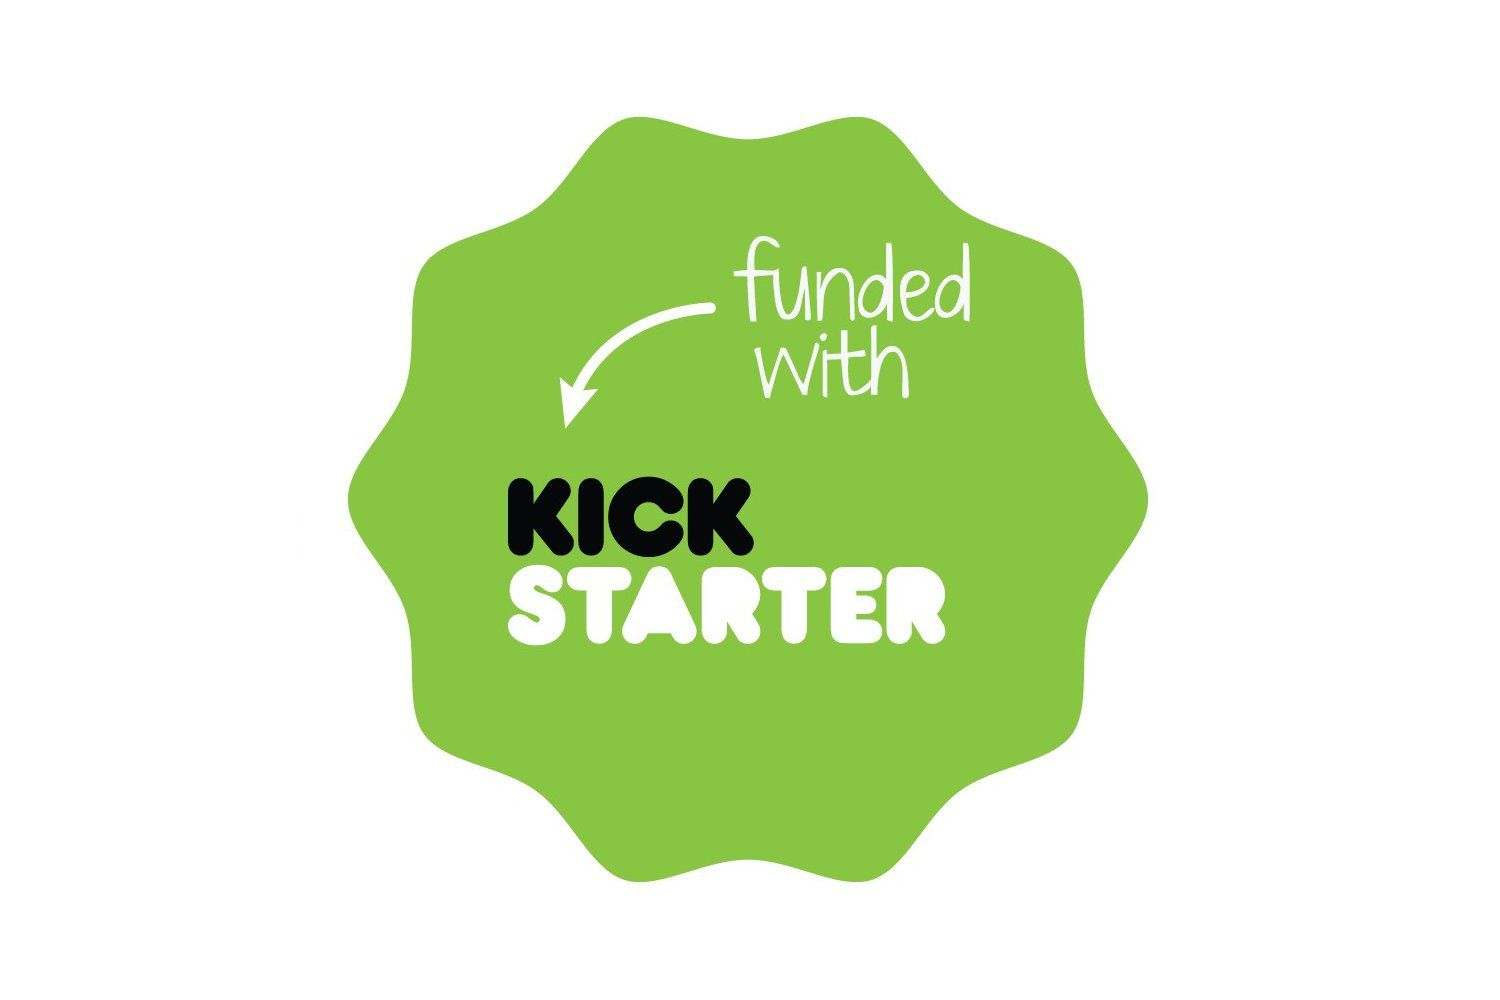 kickstarter project It's got everything you need to run a successful kickstarter campaign   kickstarter shows the most popular pledge amount is $25, so make sure you  have plenty.